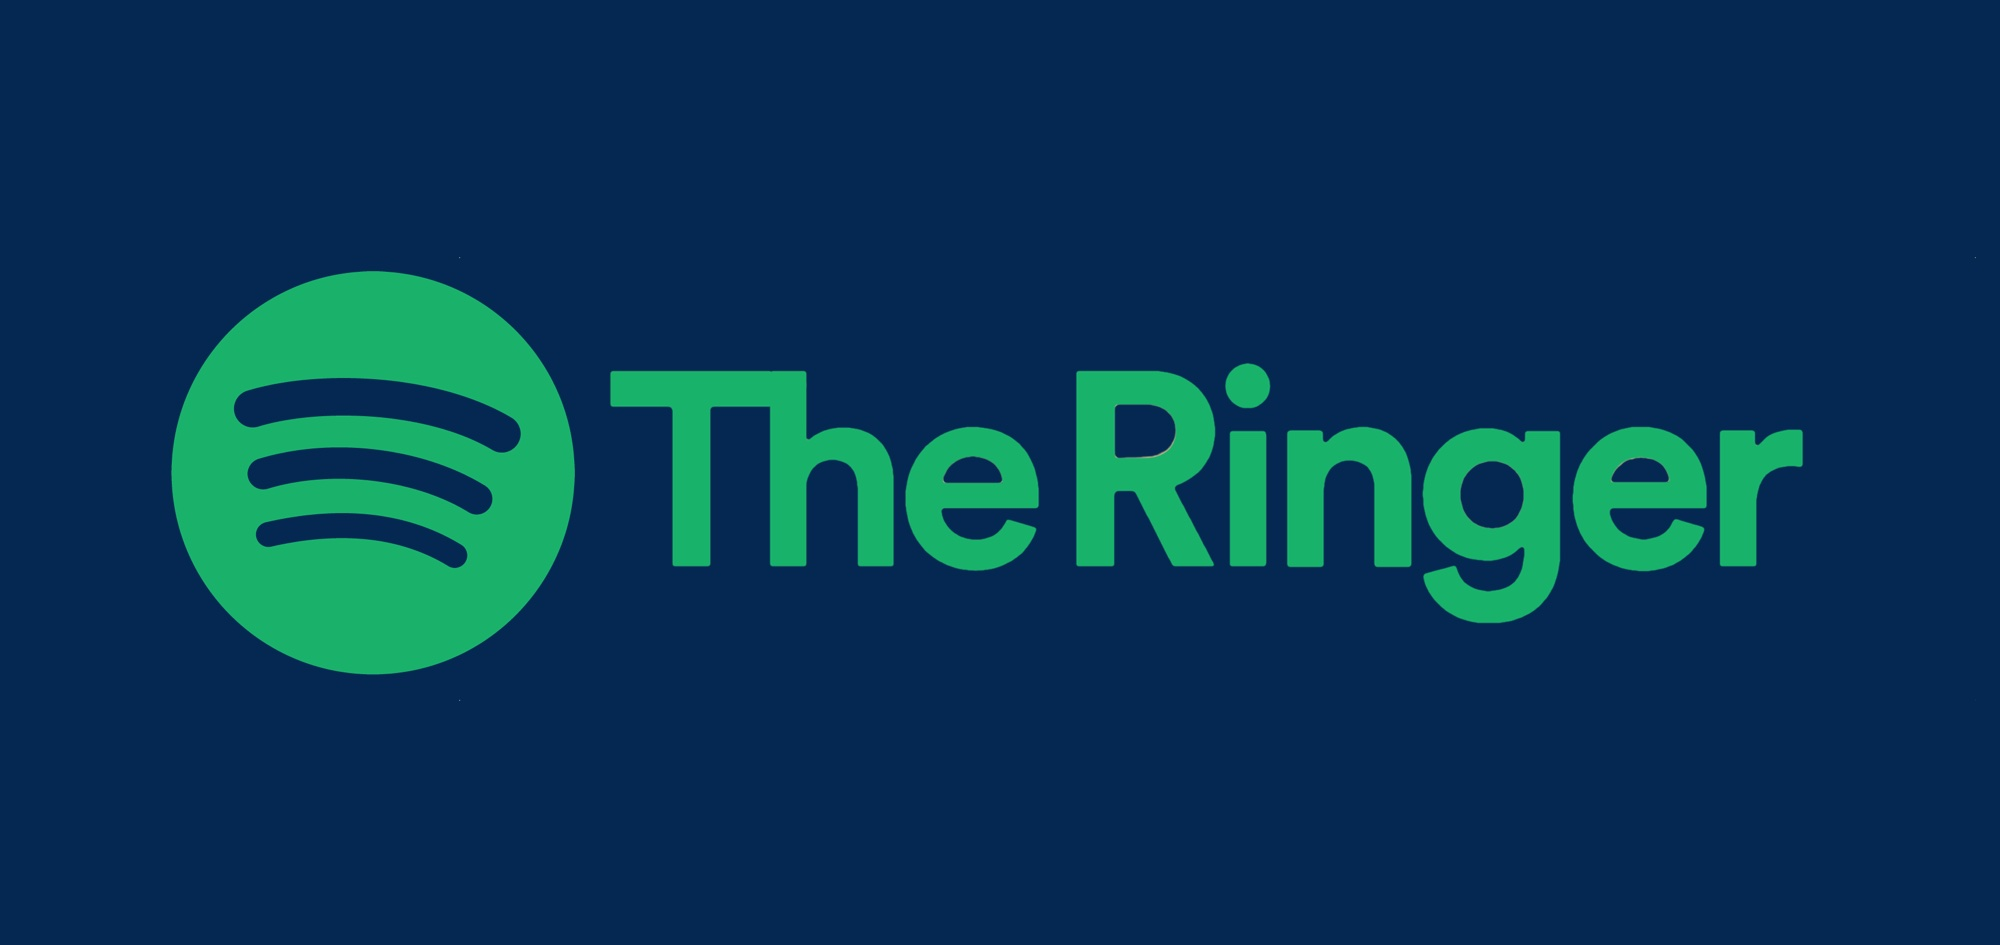 Would Acquiring The Ringer Move Spotify To The Top Of The